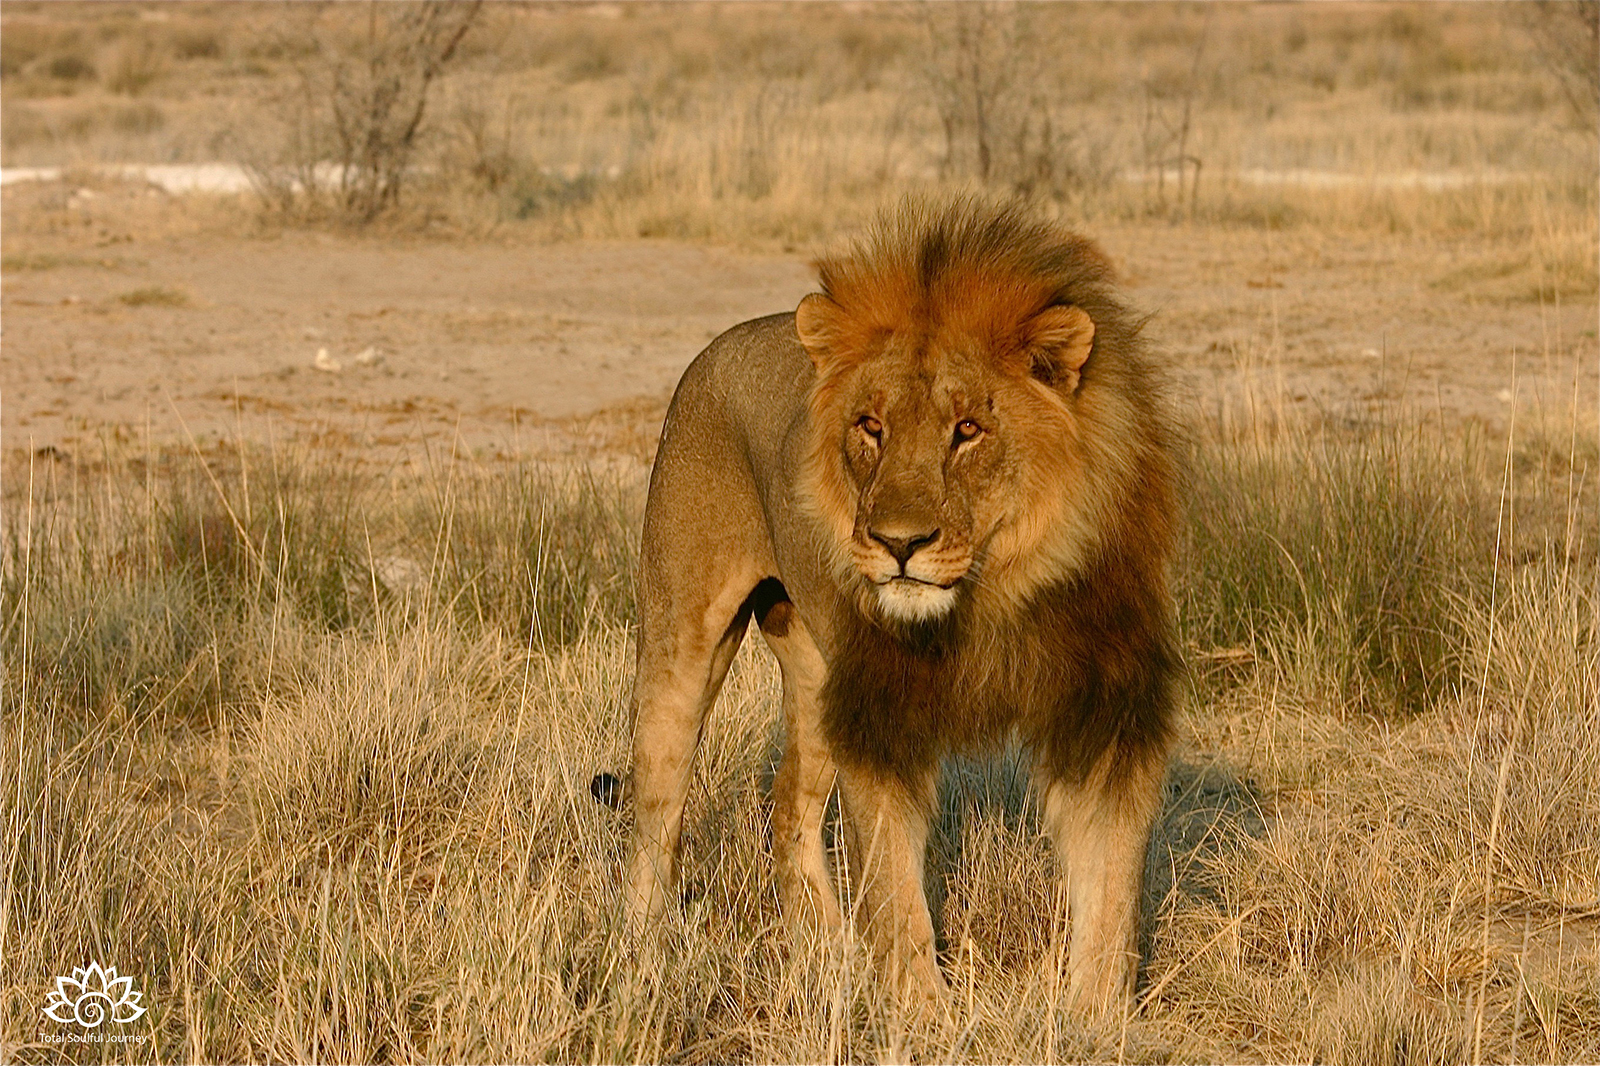 Photographing this Lion was one of my favorite Moments at Etosha National Park in Namibia - Photography by Paul Garrett